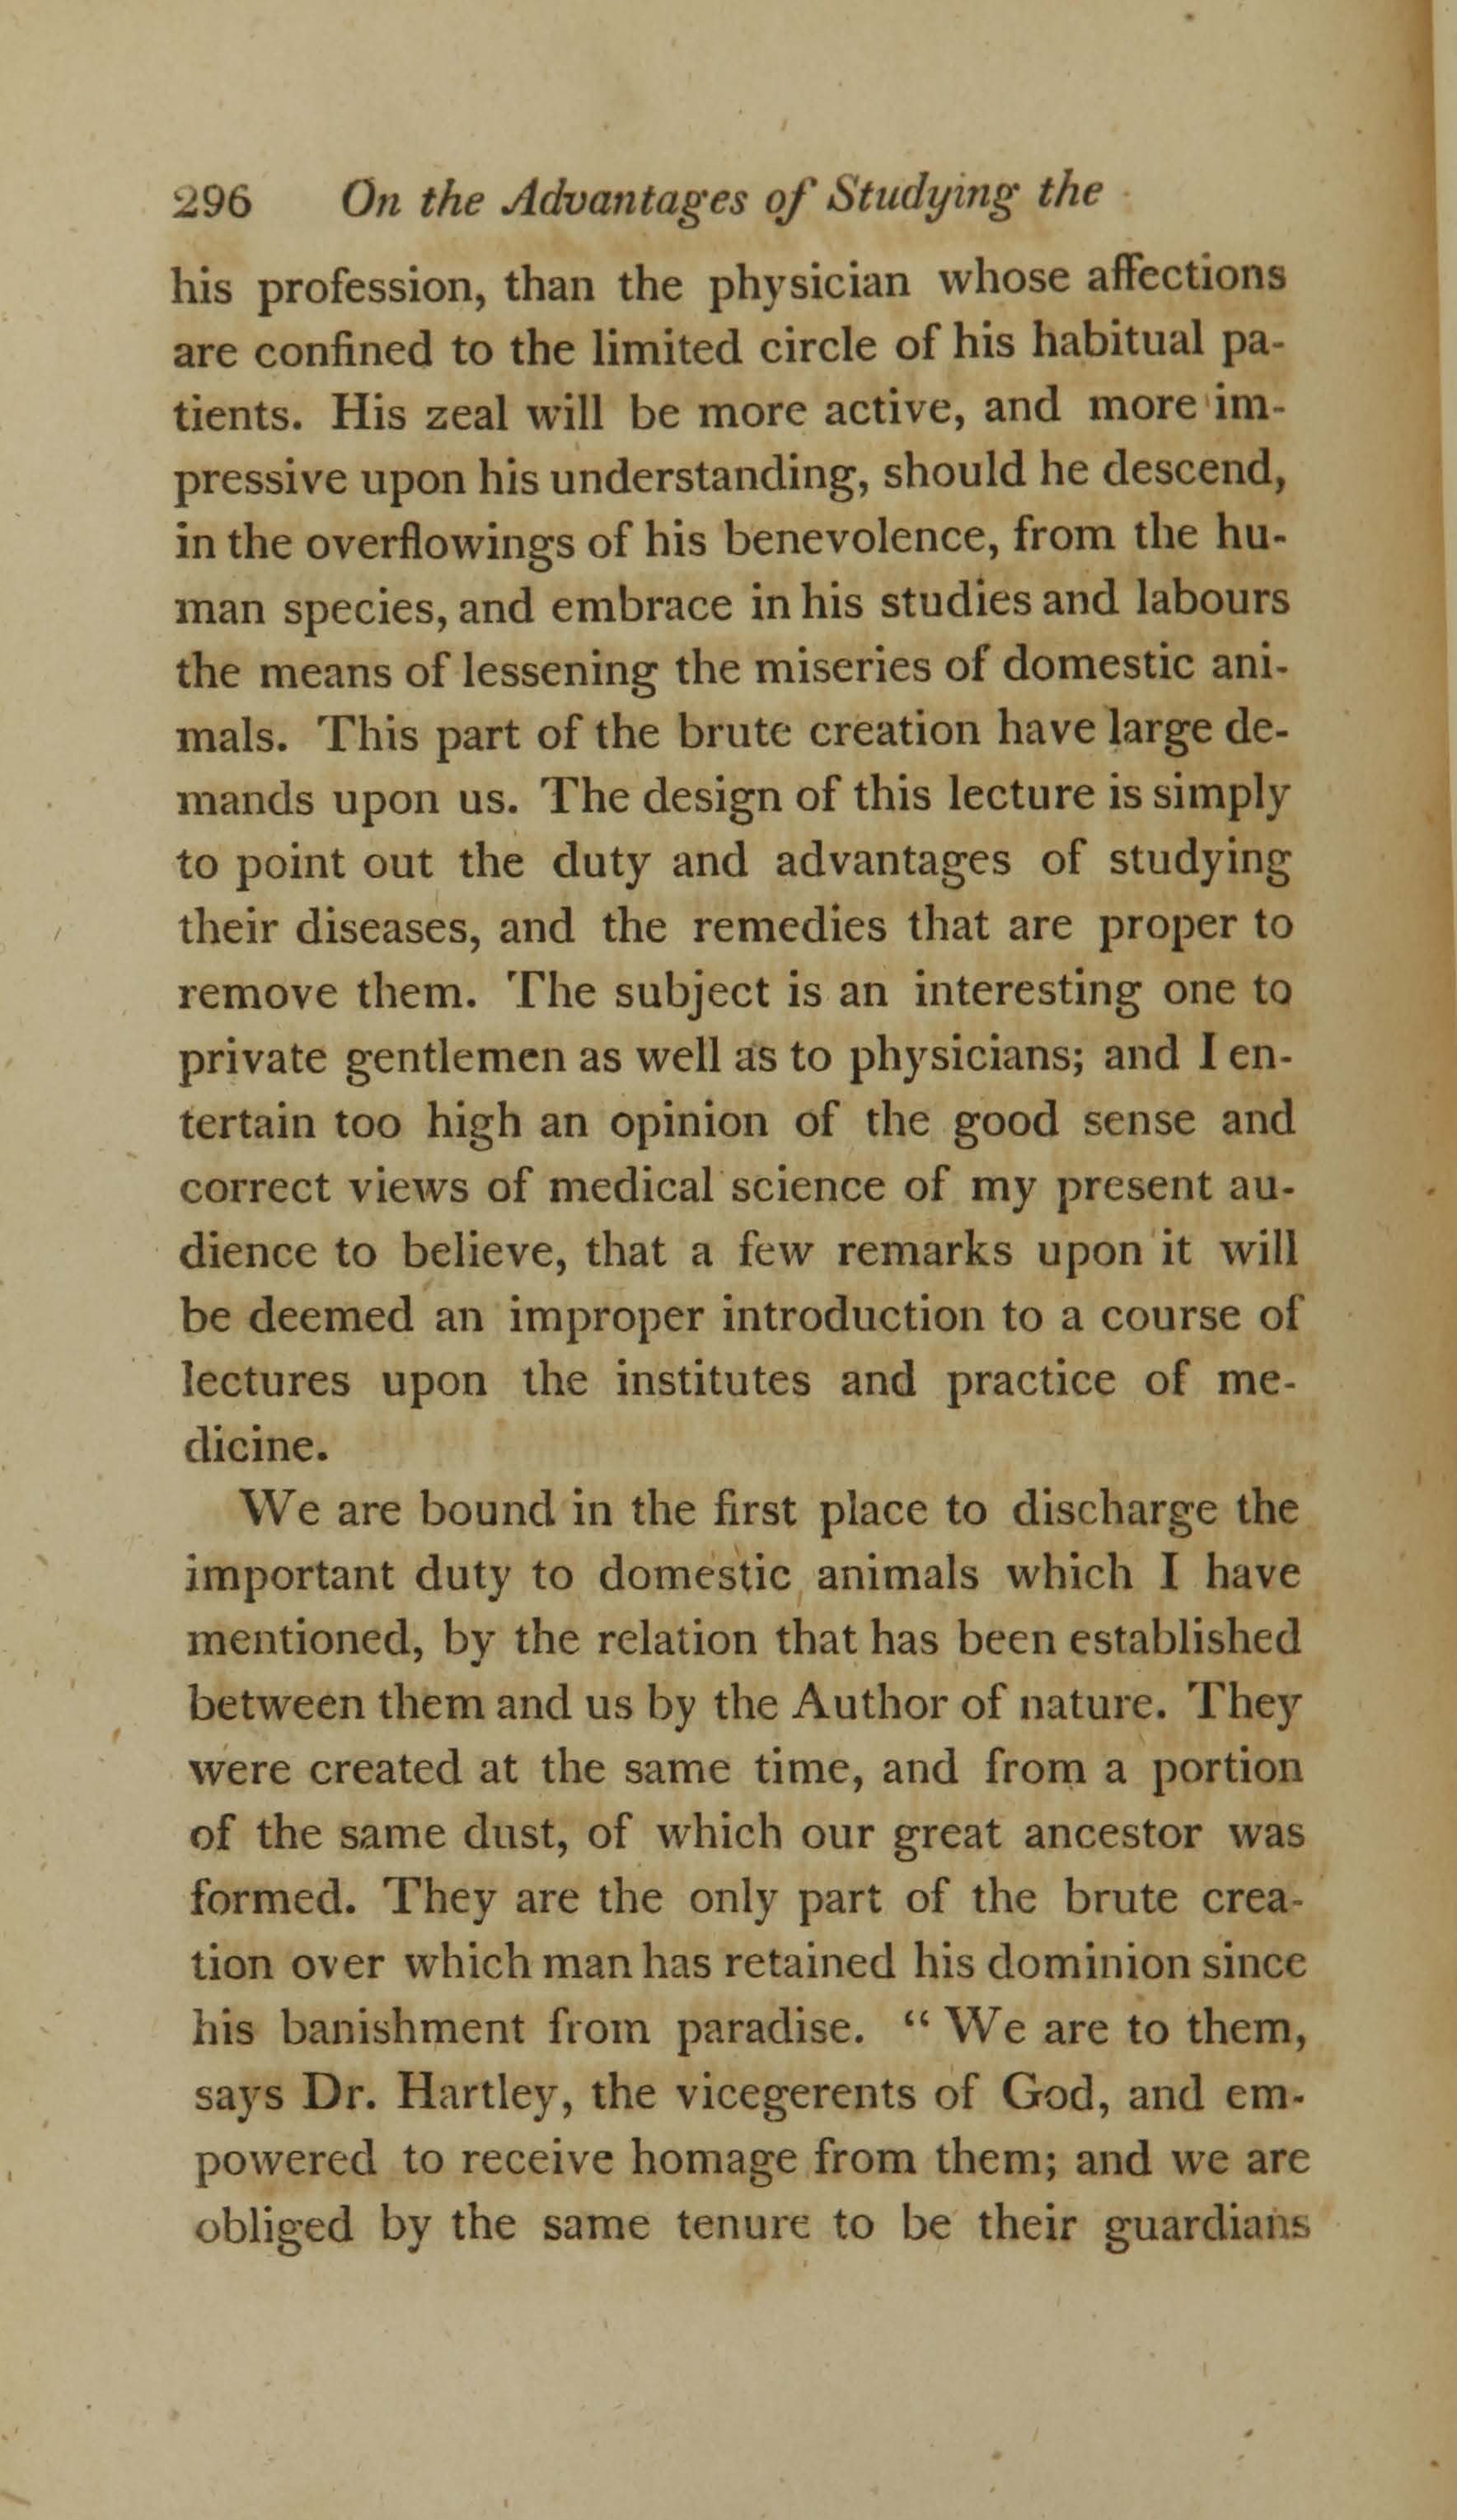 On the Duty and Advantages of Studying the Diseases of Domestic Animals (page 2)